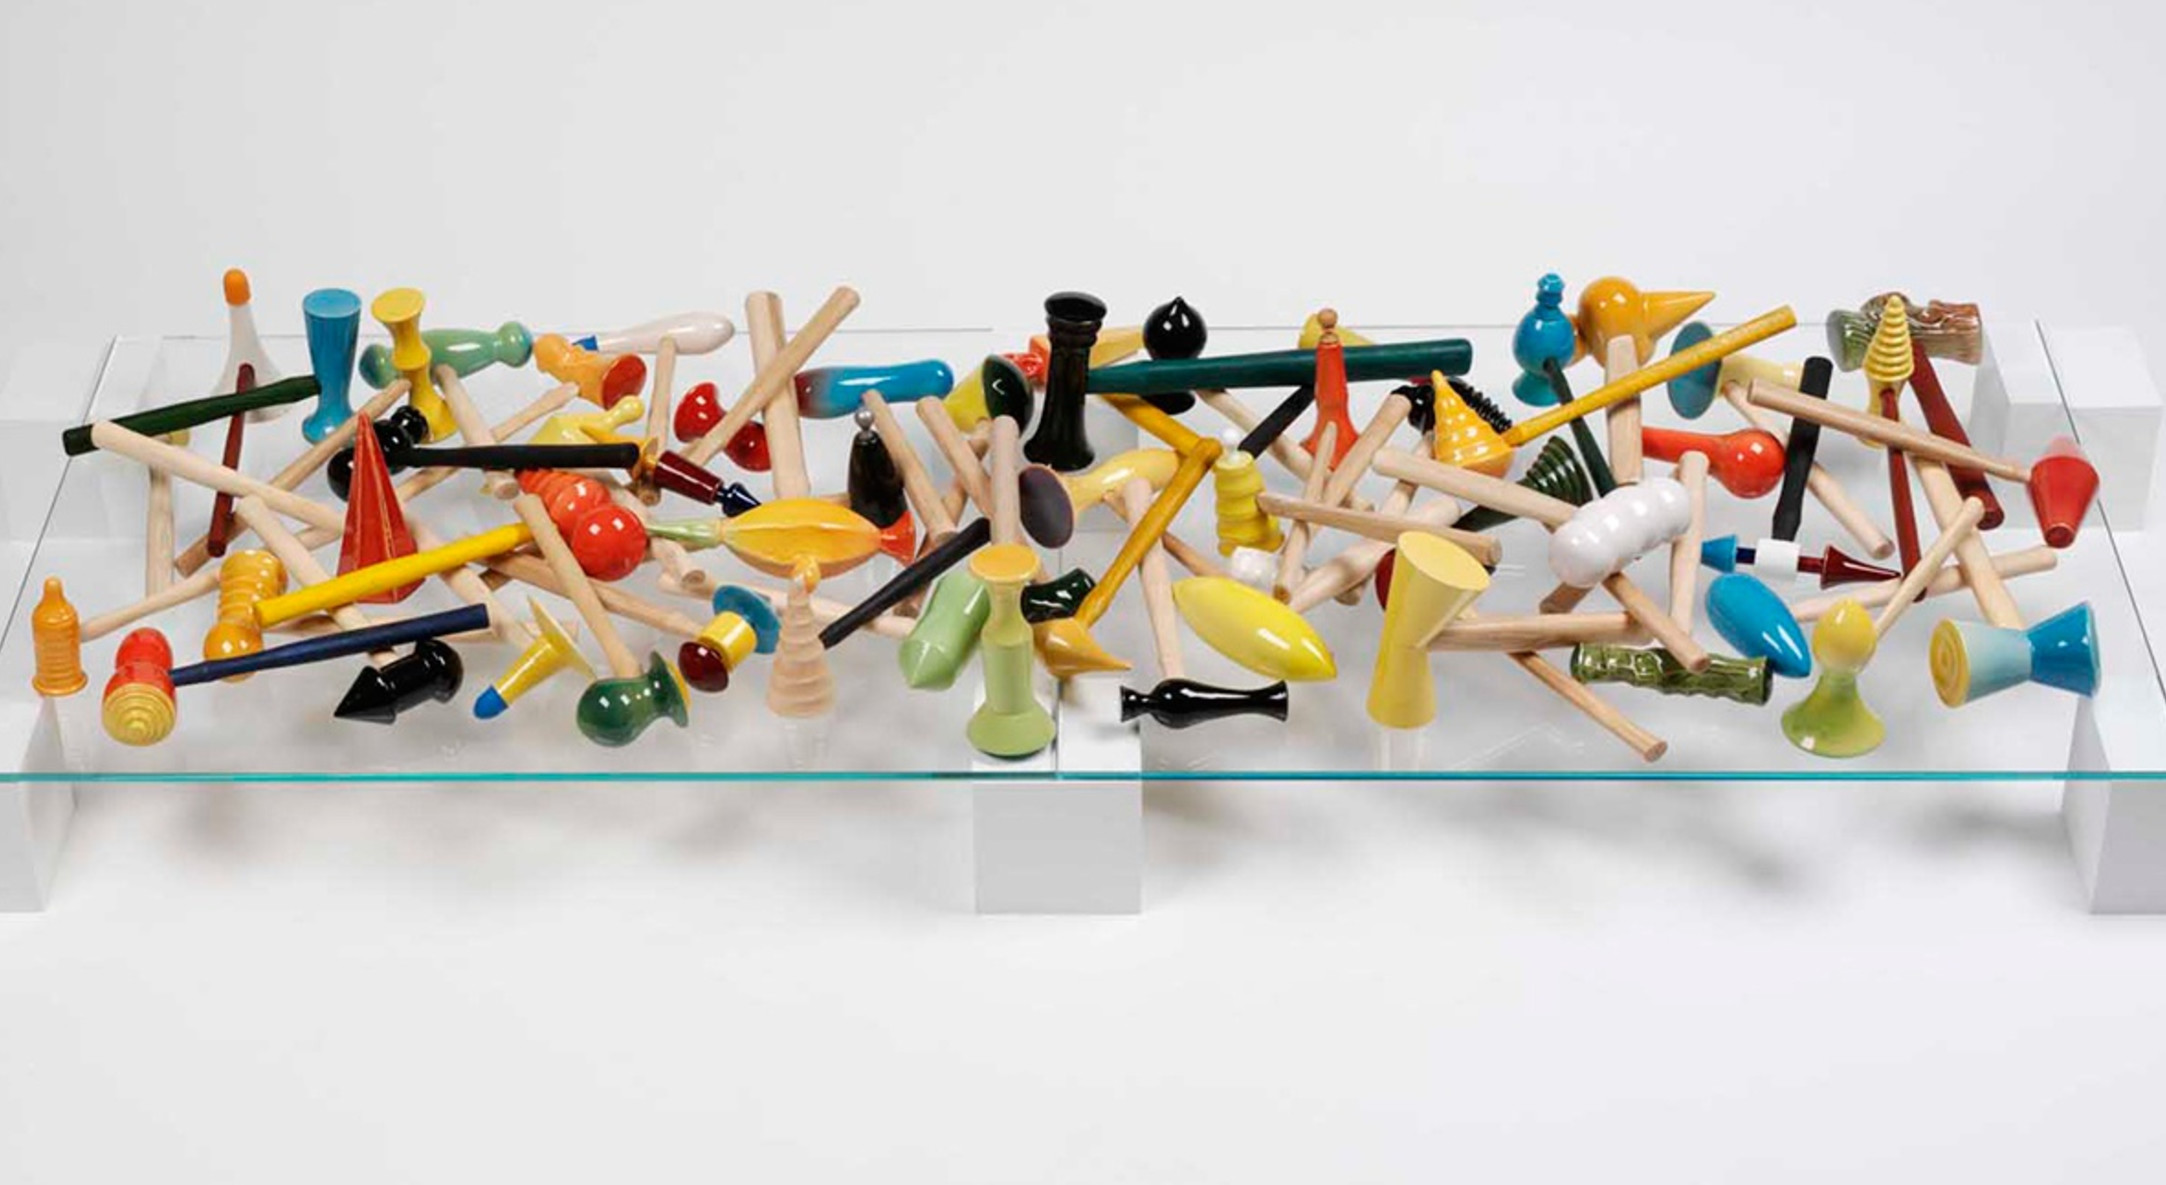 Richard Slee, Hammers, 2010-2018, Glazed ceramic with wood hammer handles, wood stain, rubber, metal, and found additions in three hundred and twenty-five (325) parts, Overall dimensions vary with installation